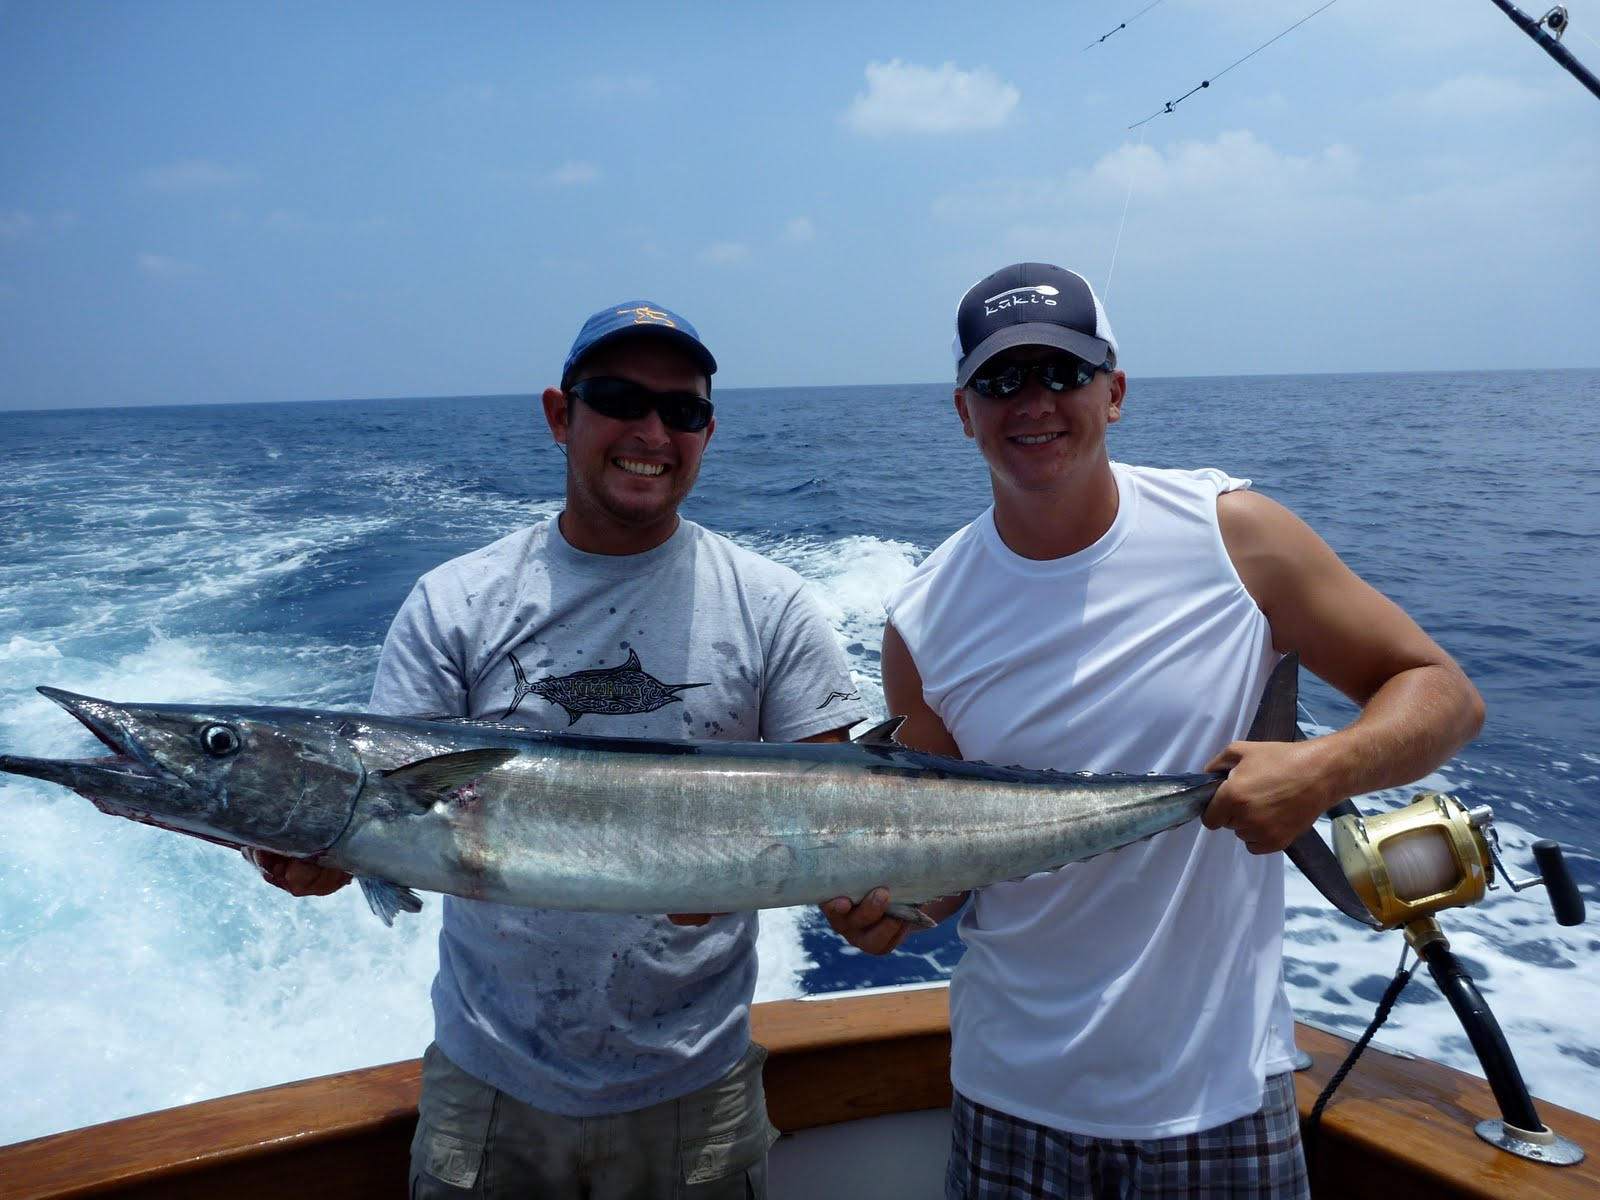 Kona hawaii sportfishing blog 5 31 10 kukio crew for Kona fishing charters